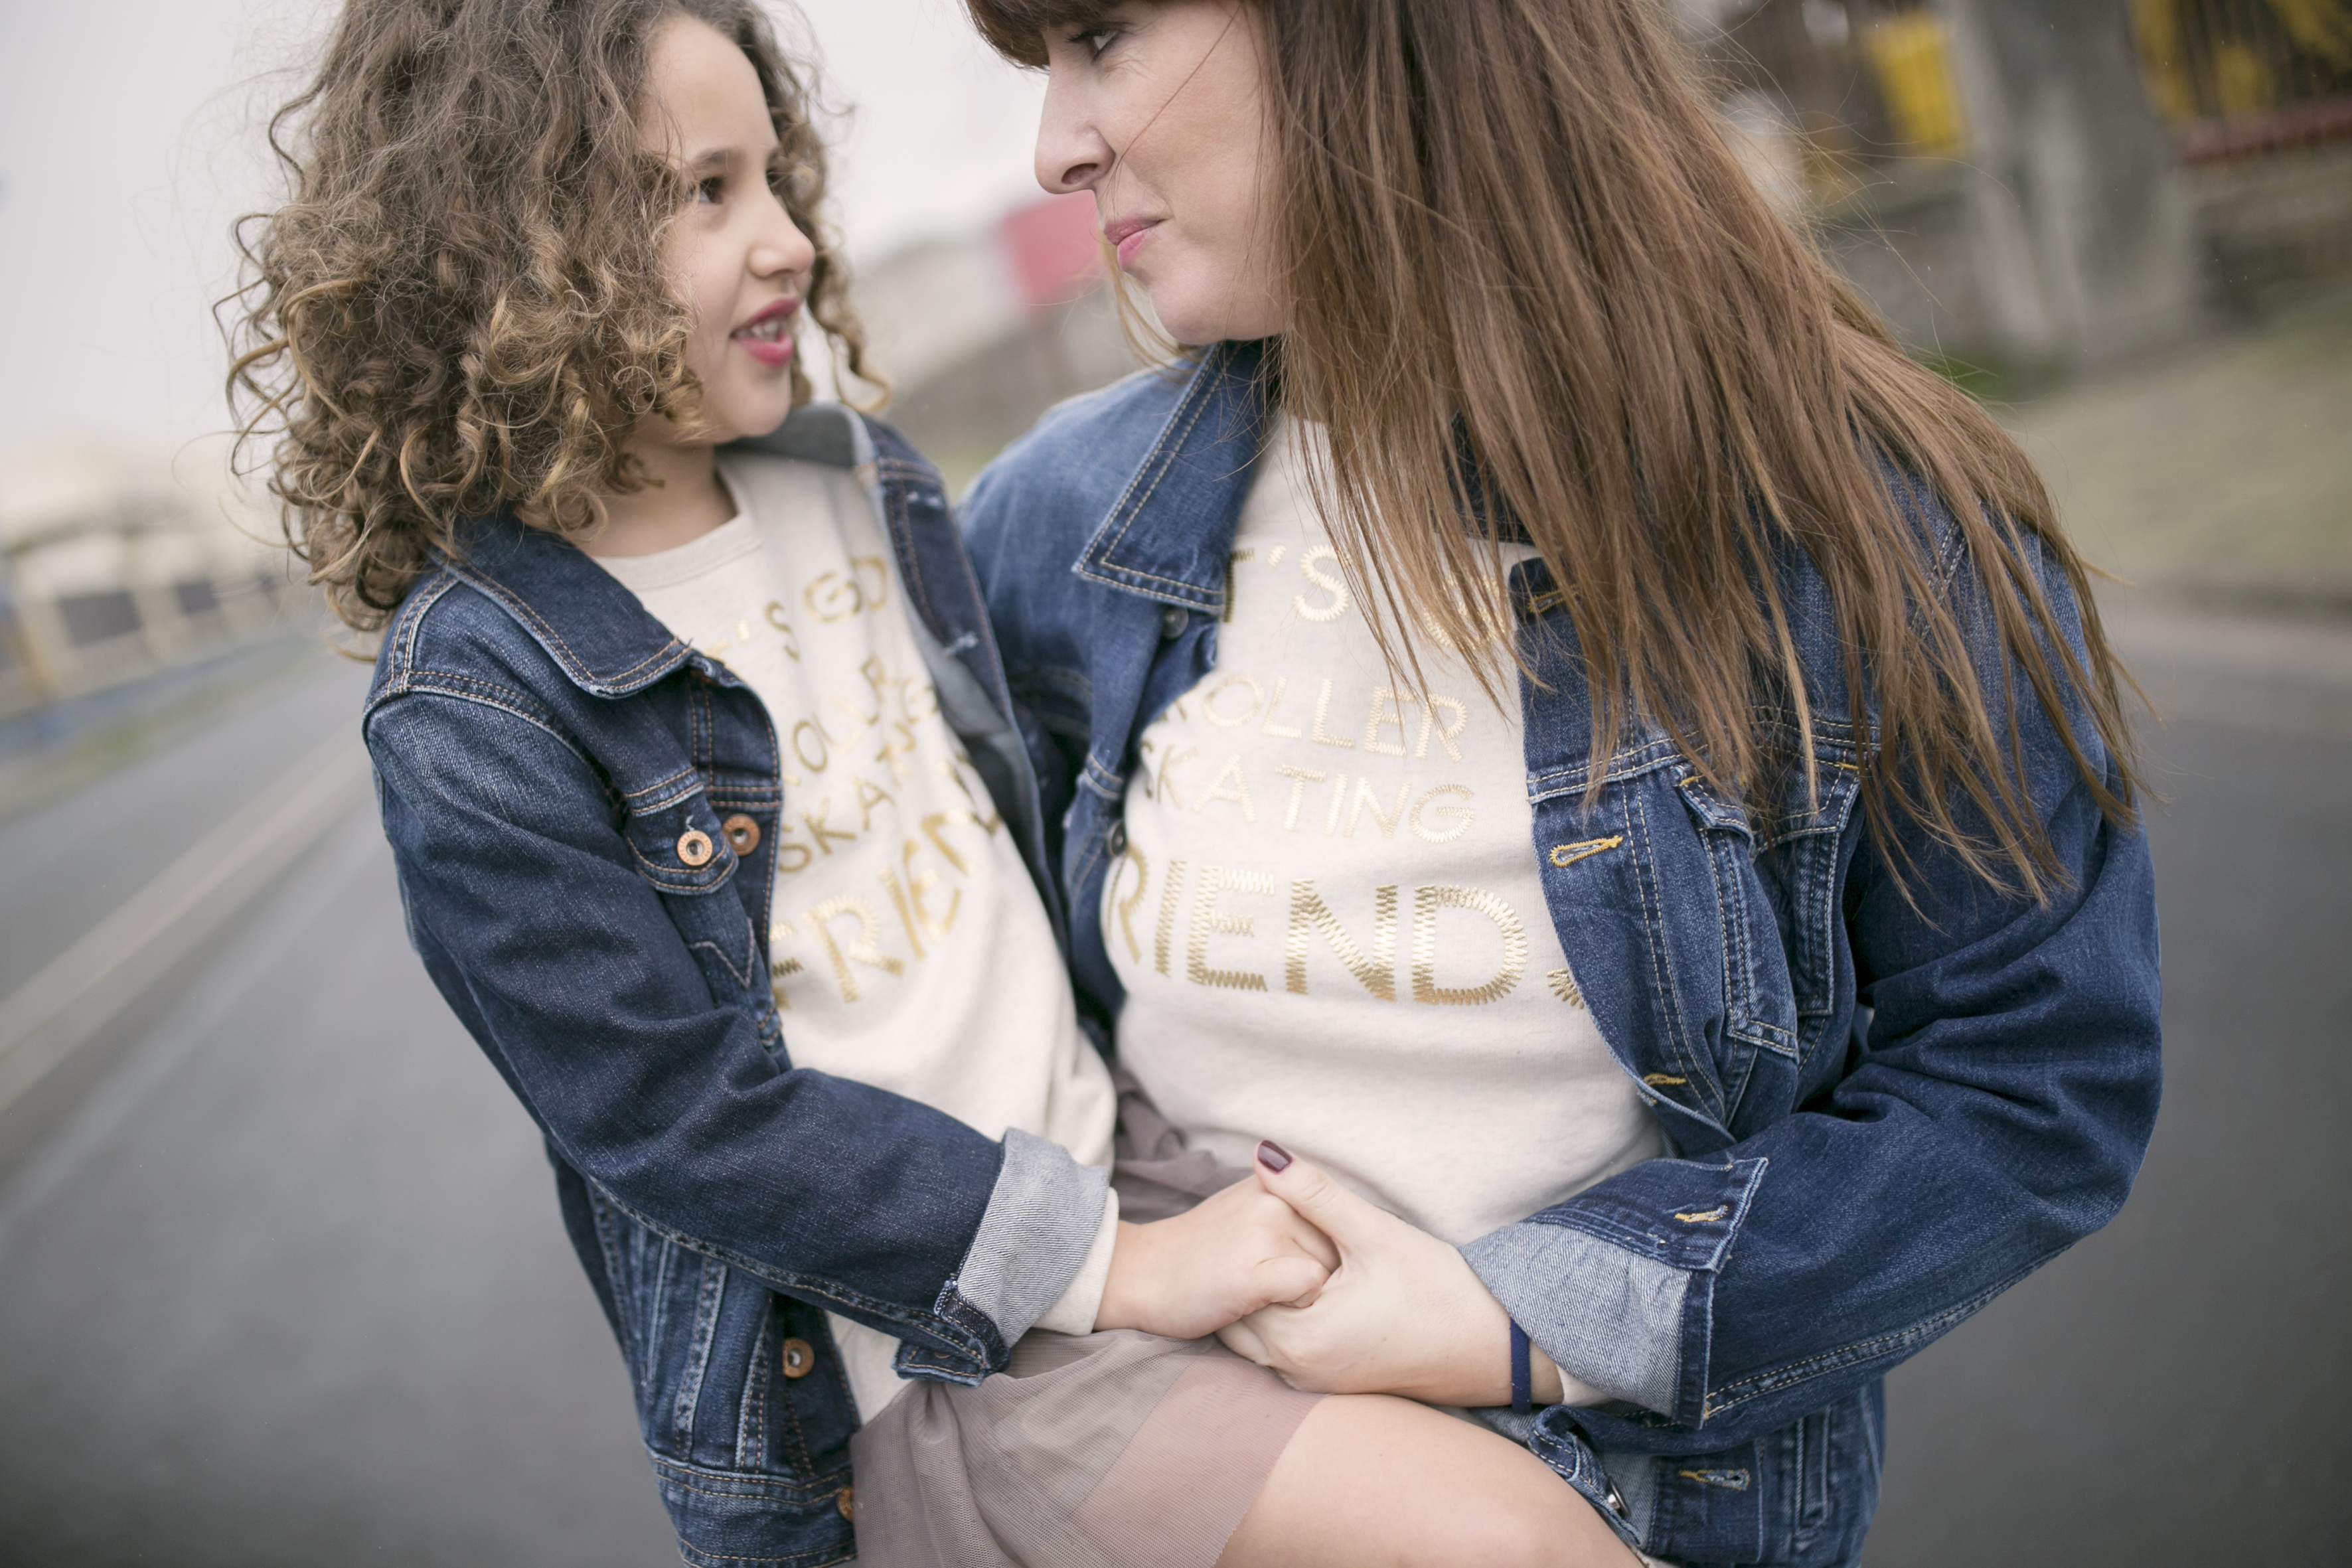 sudadera zara kids-mommyblogger-zara people-calle-mother and daughter- pepe jeans-denim jacket- zarakids-look-madre e hija-fashion